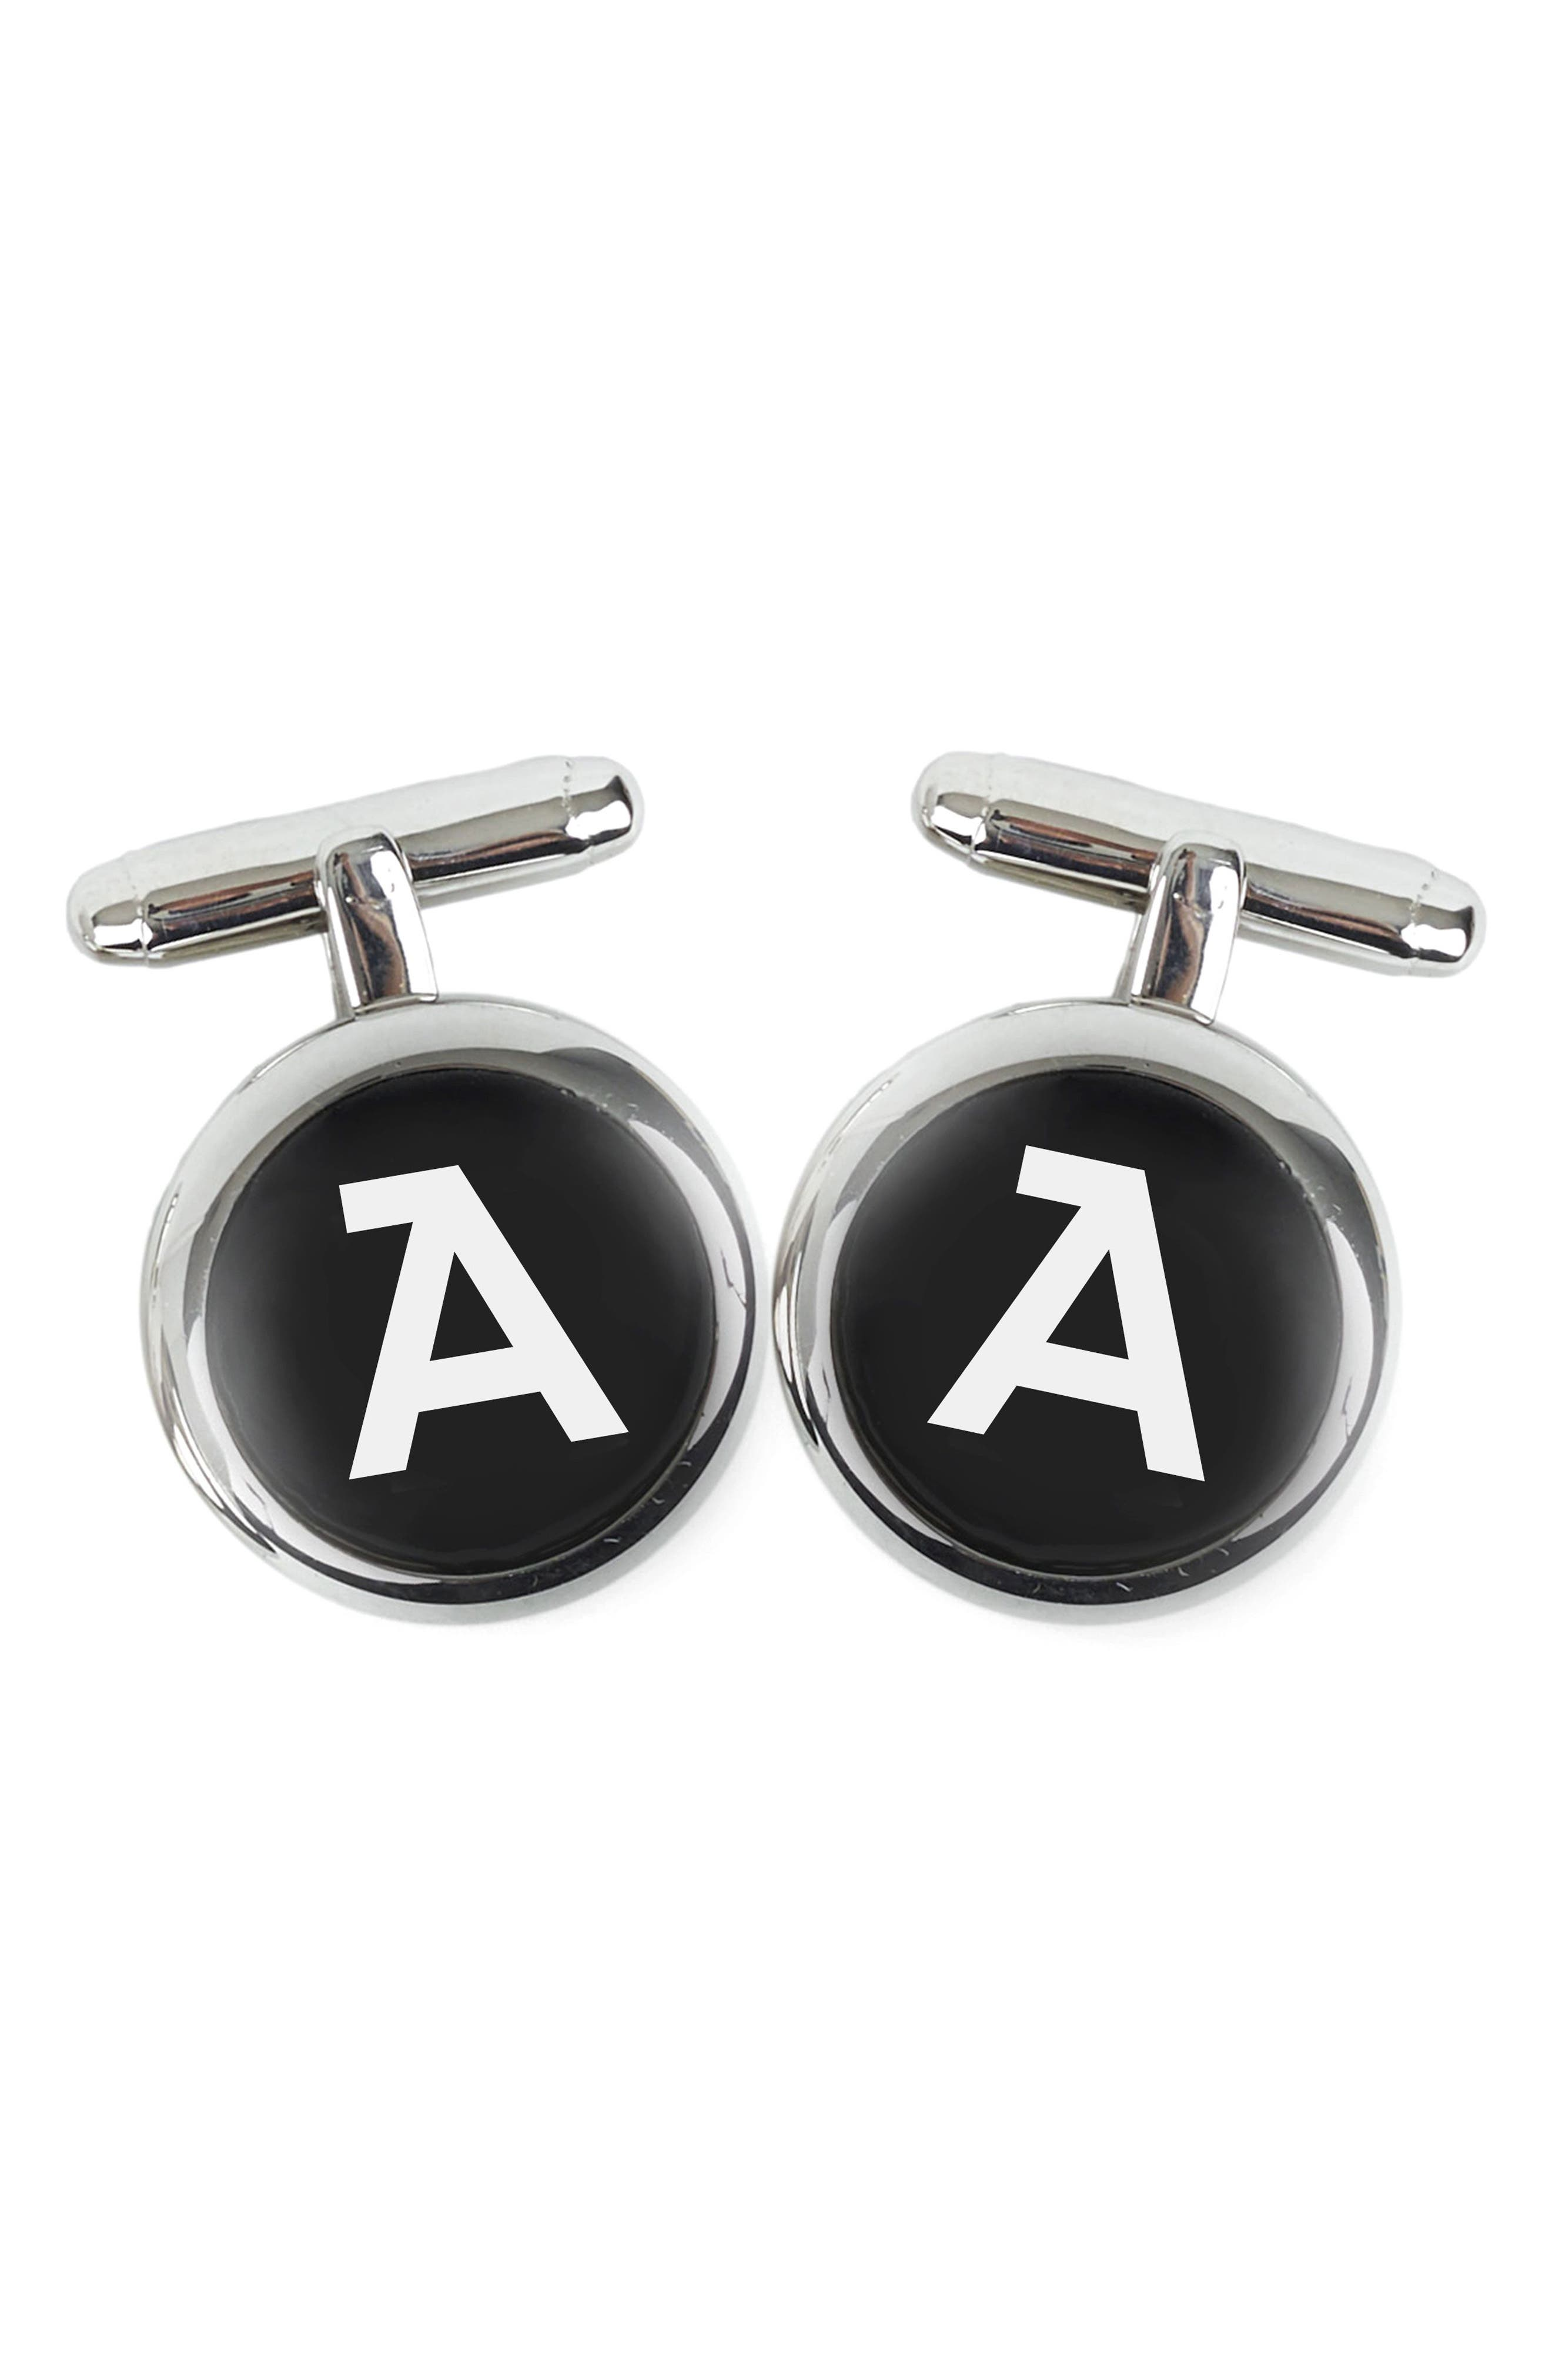 Brooklyn Silver Monogram Cuff Links,                         Main,                         color, A